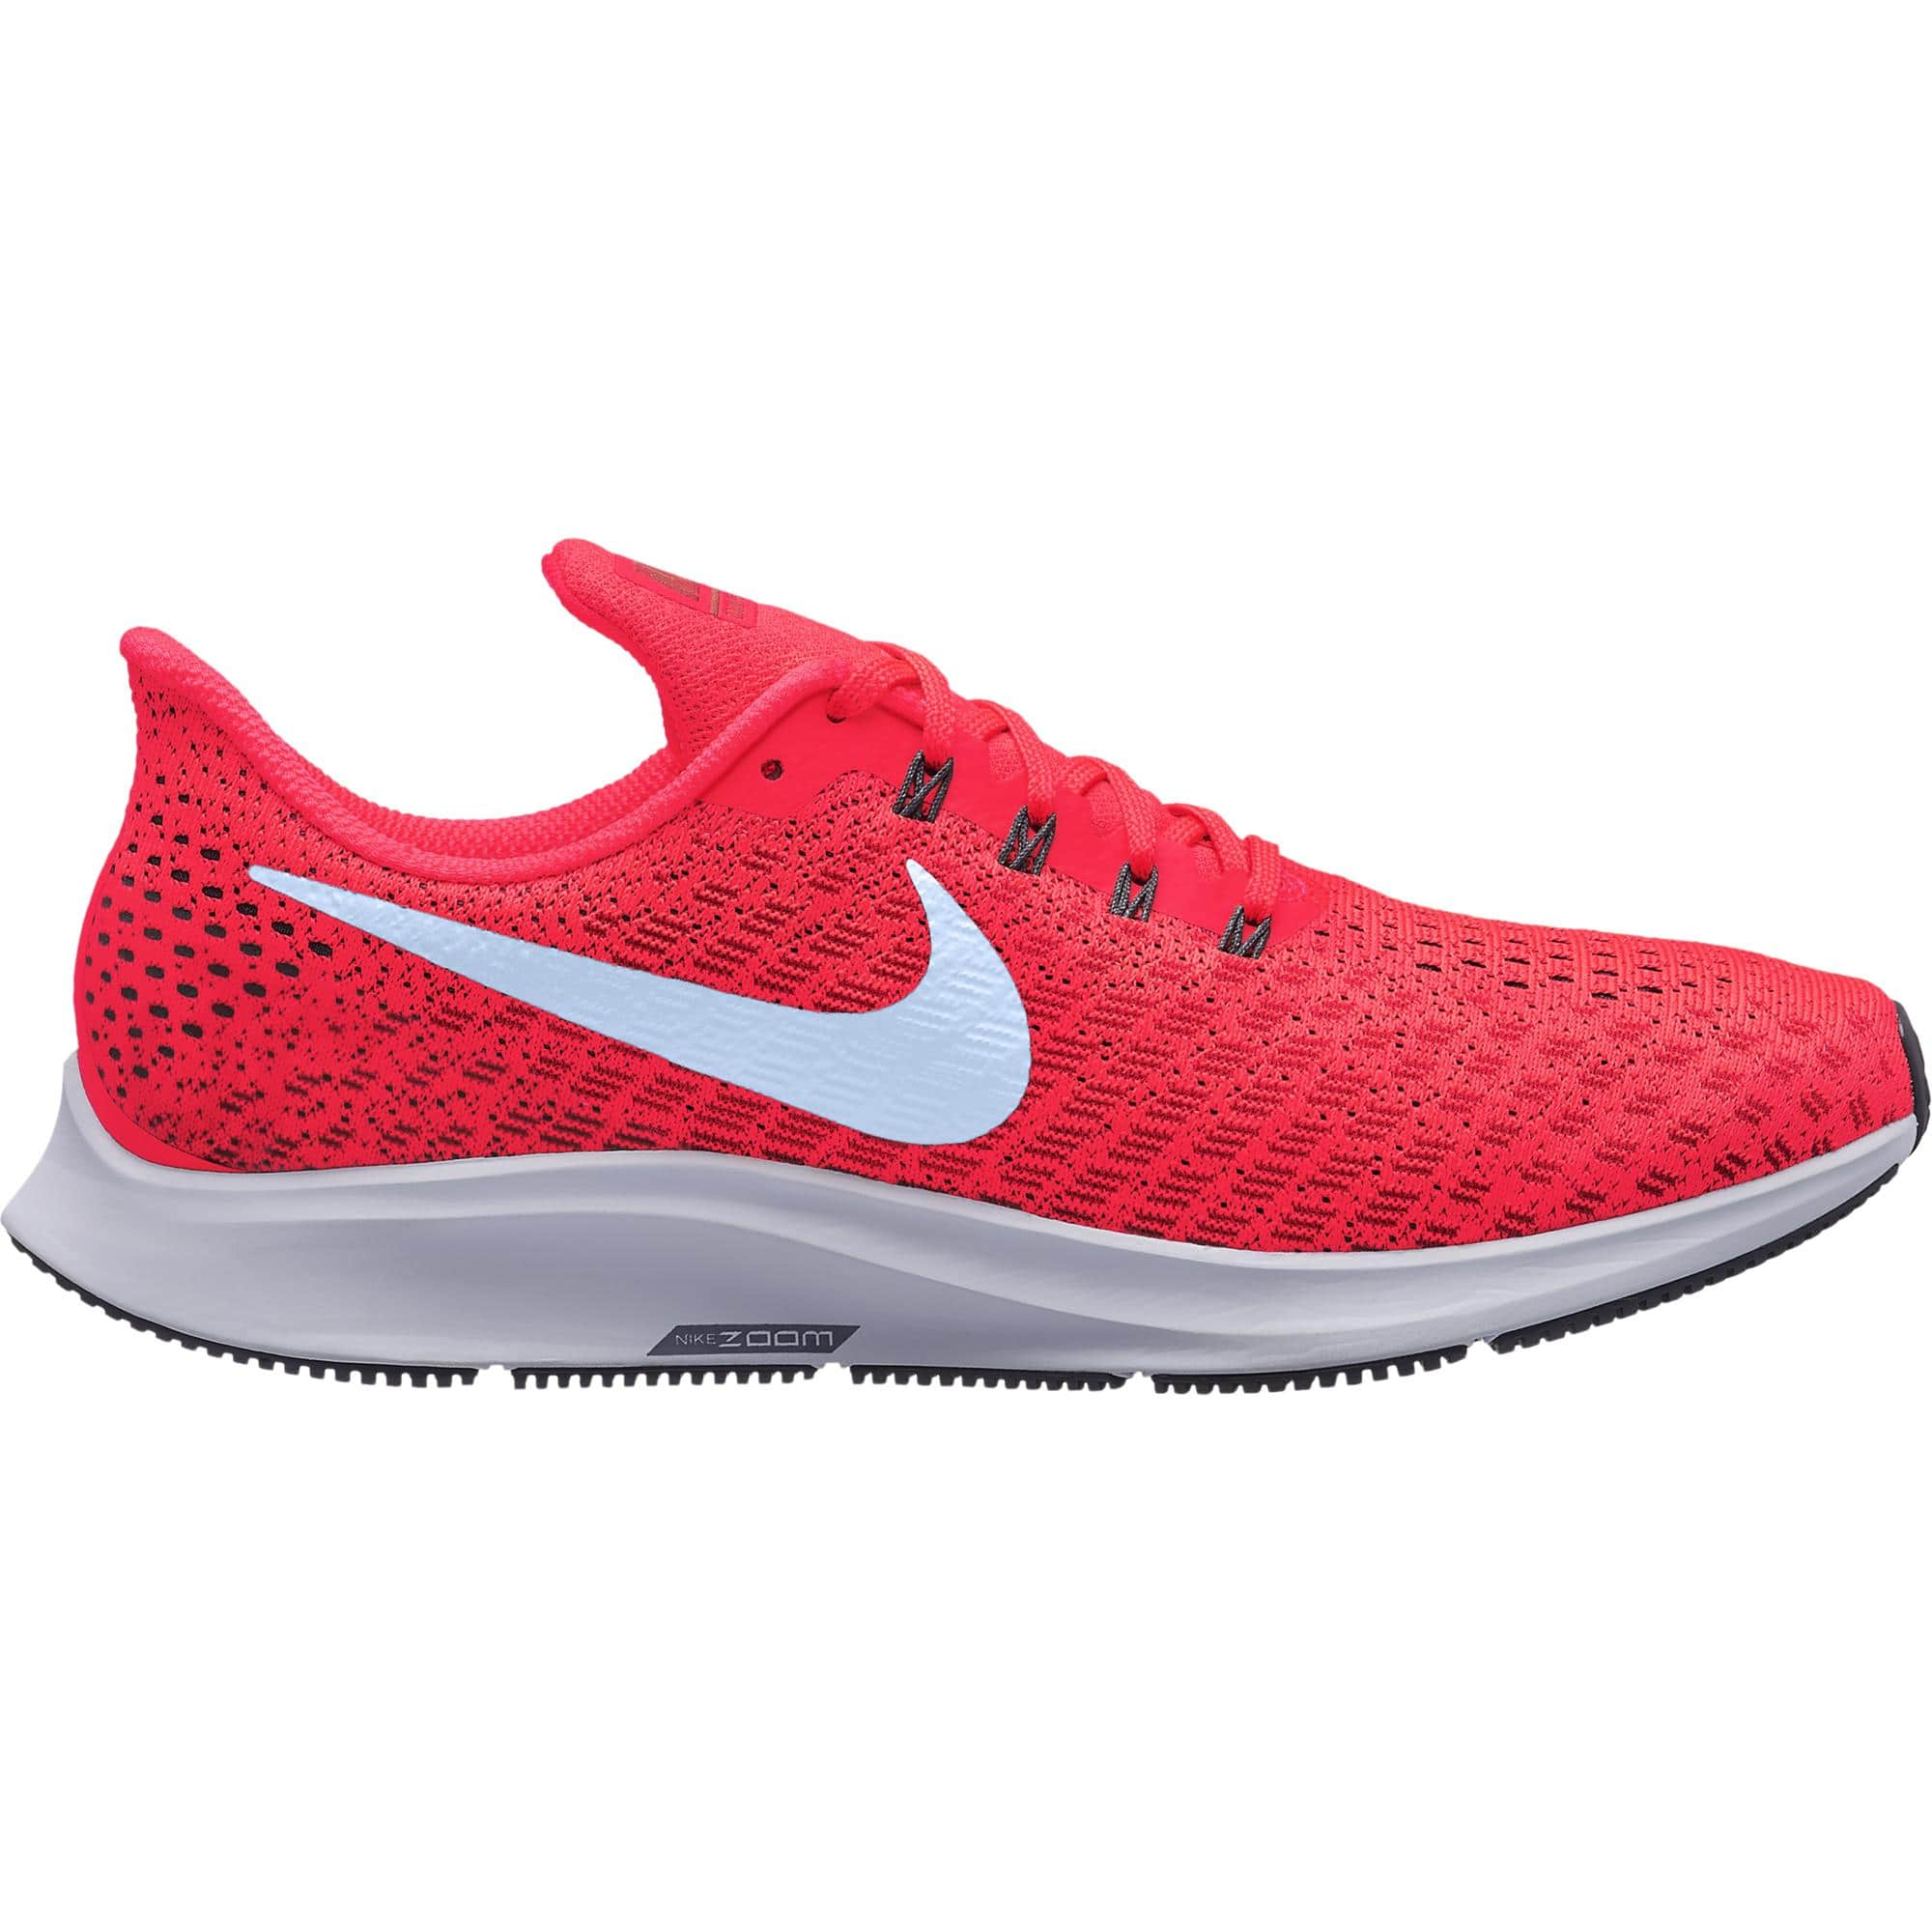 4b6d7a89 Men's Nike Air Zoom Pegasus 35 - $39.99 - Foot Locker In-Store ...